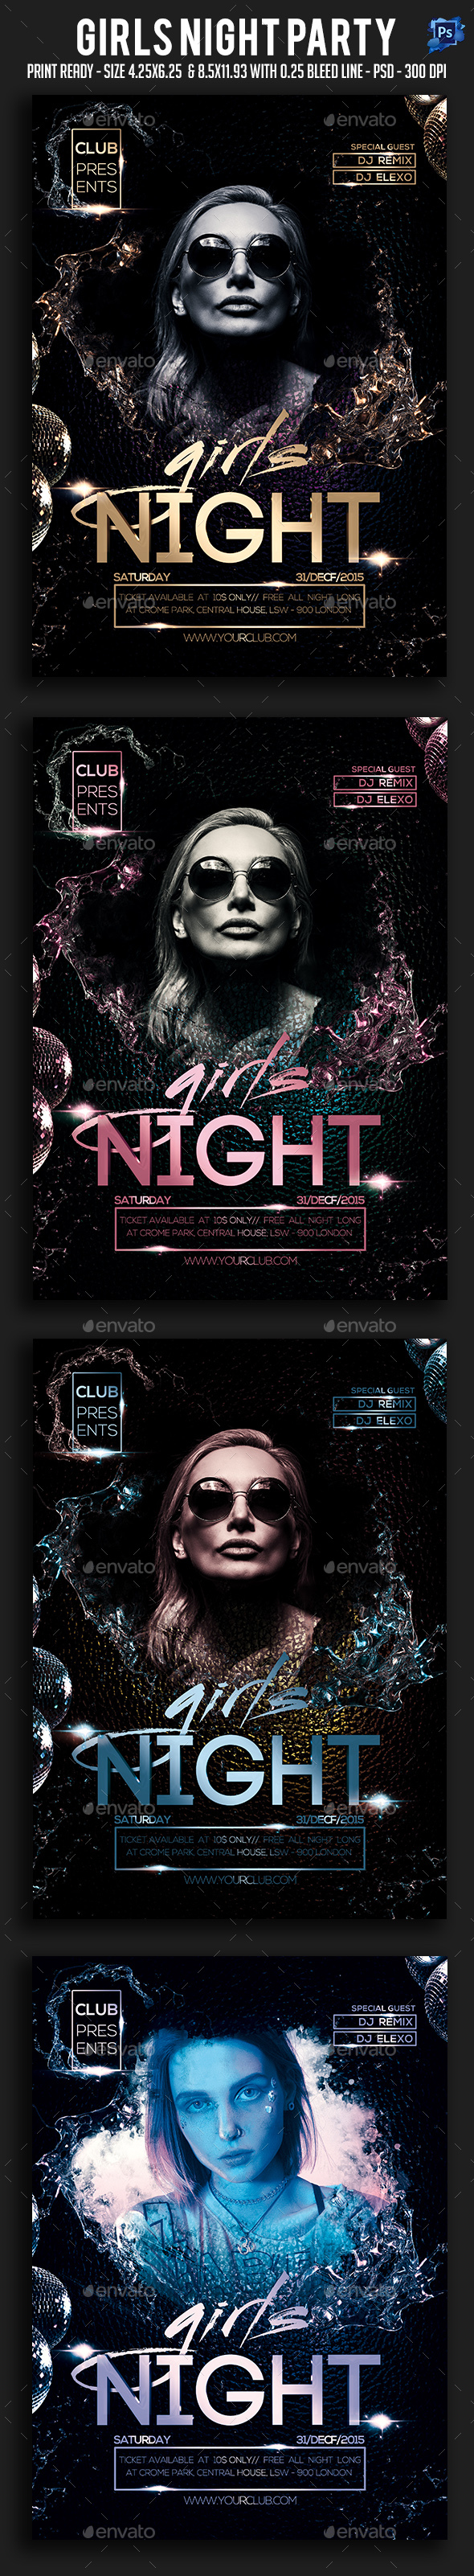 Girls Night Party Flyer - Clubs & Parties Events